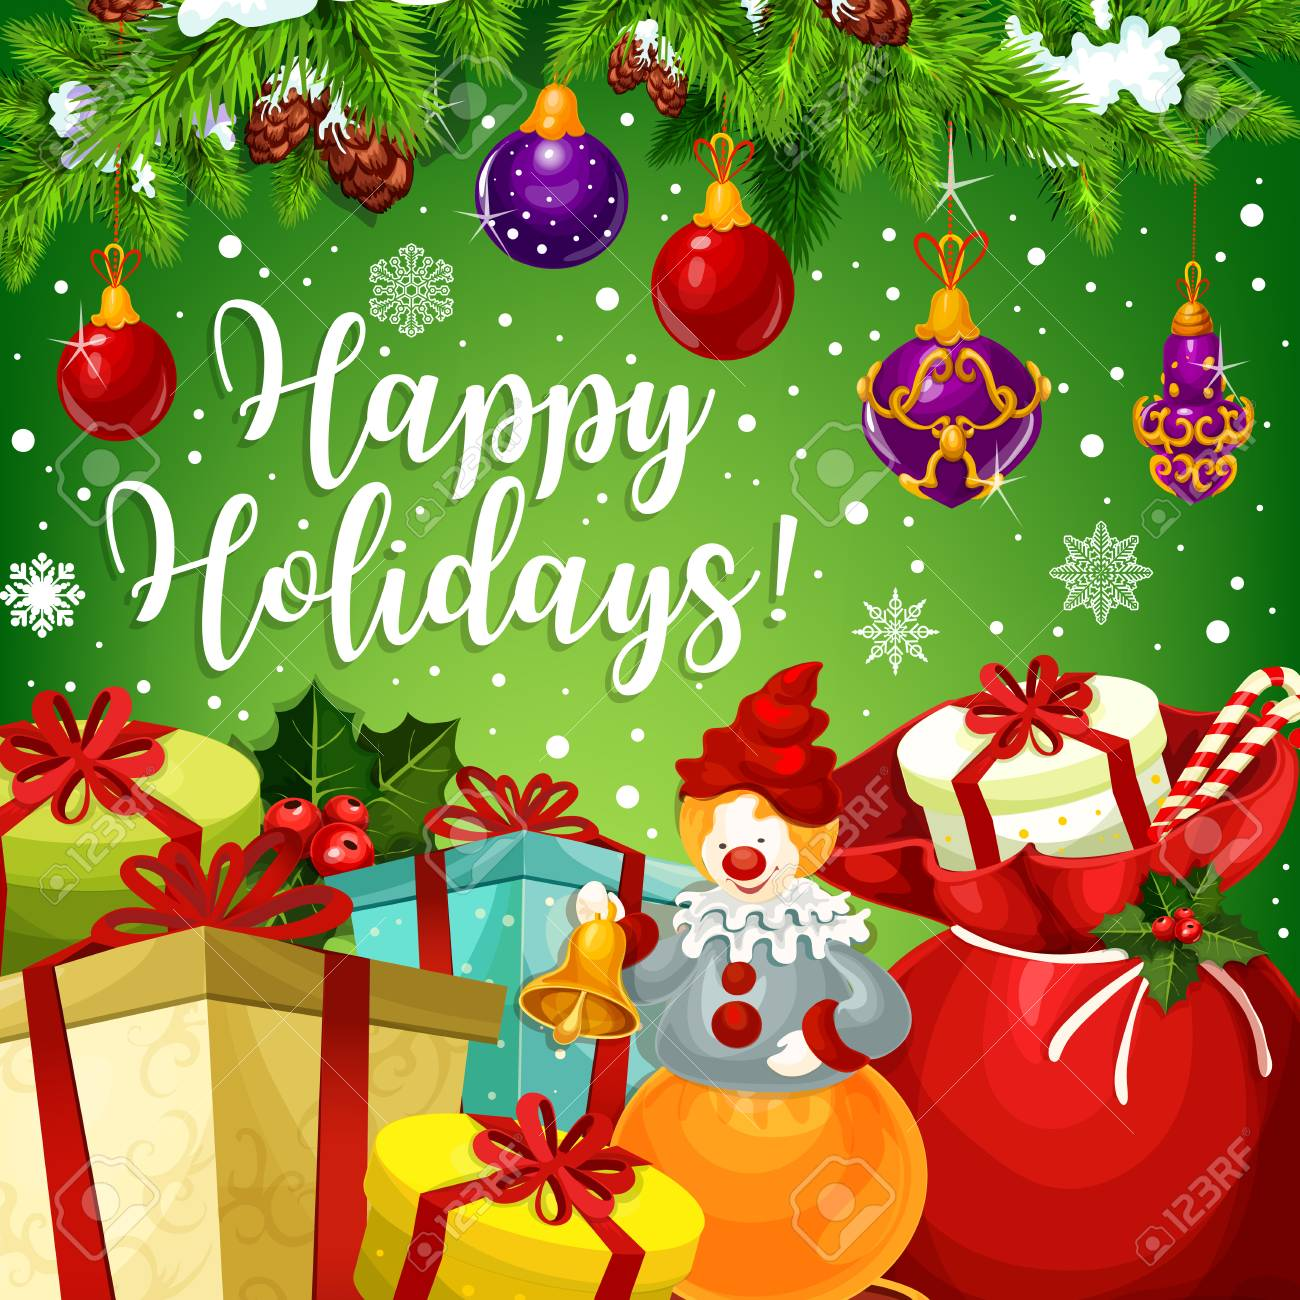 Happy Winter Holidays Greeting Card Design For Merry Christmas ...